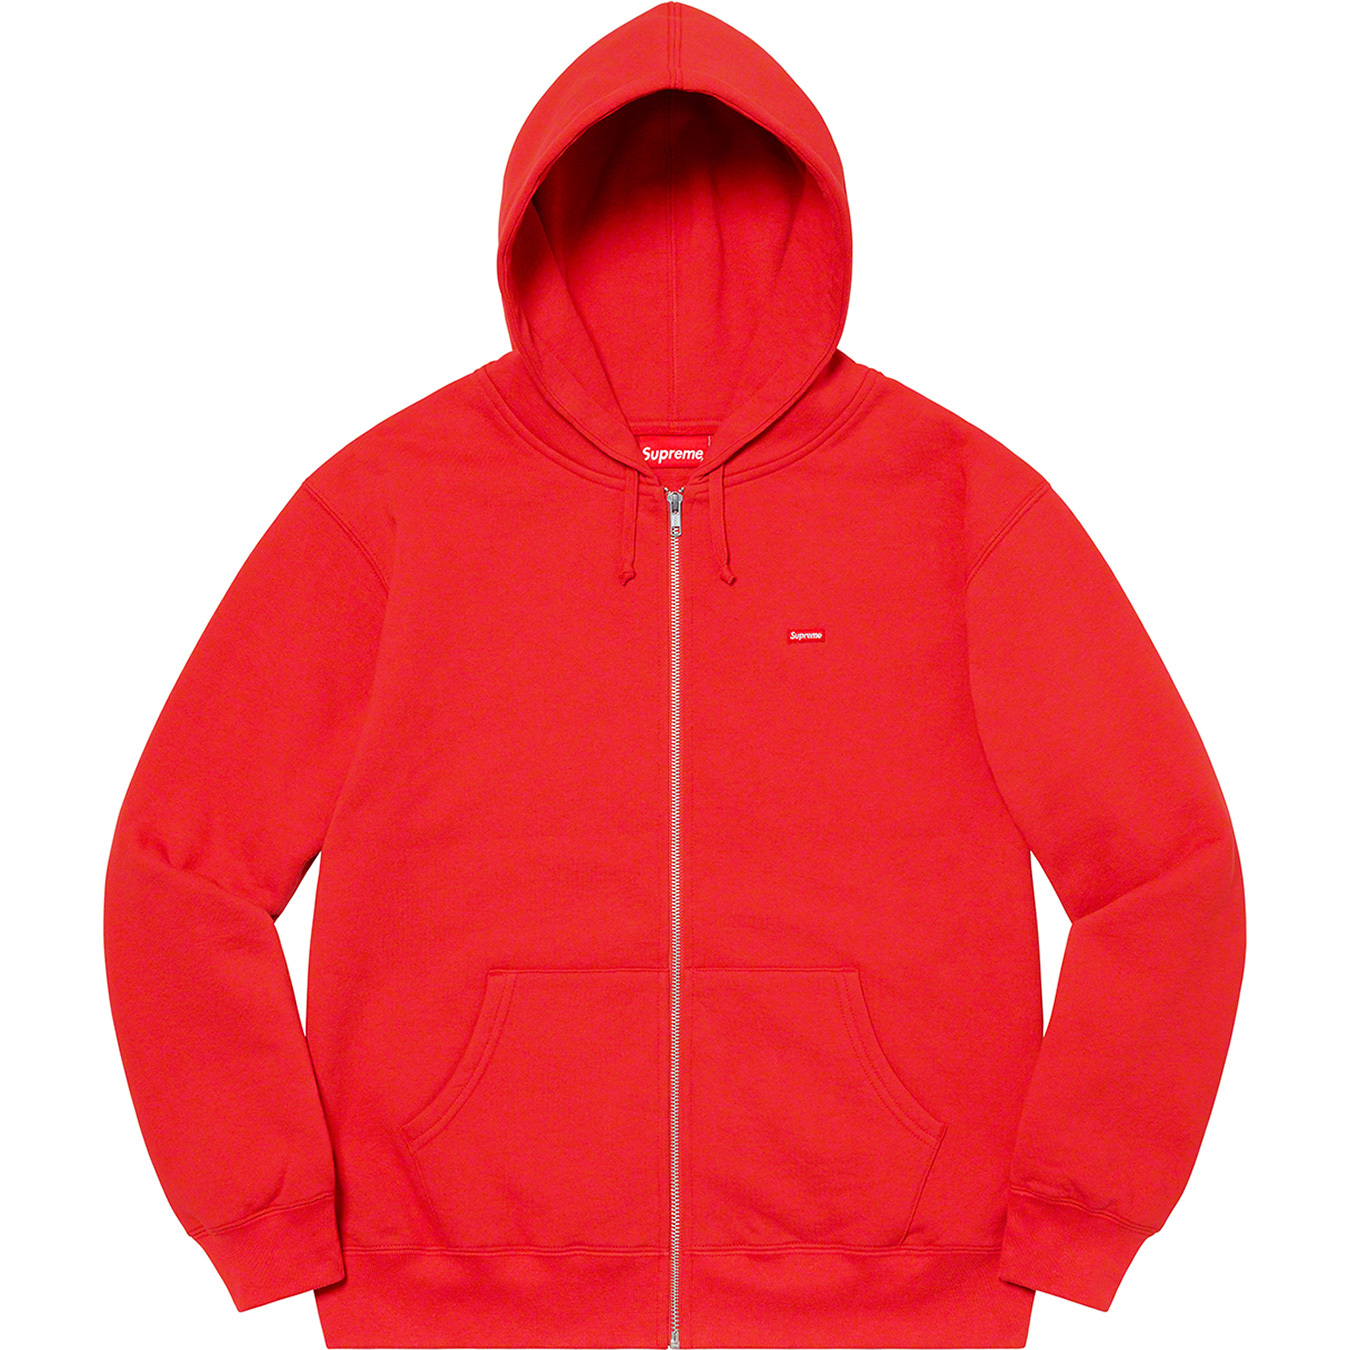 supreme-21ss-spring-summer-small-box-zip-up-hooded-sweatshirt